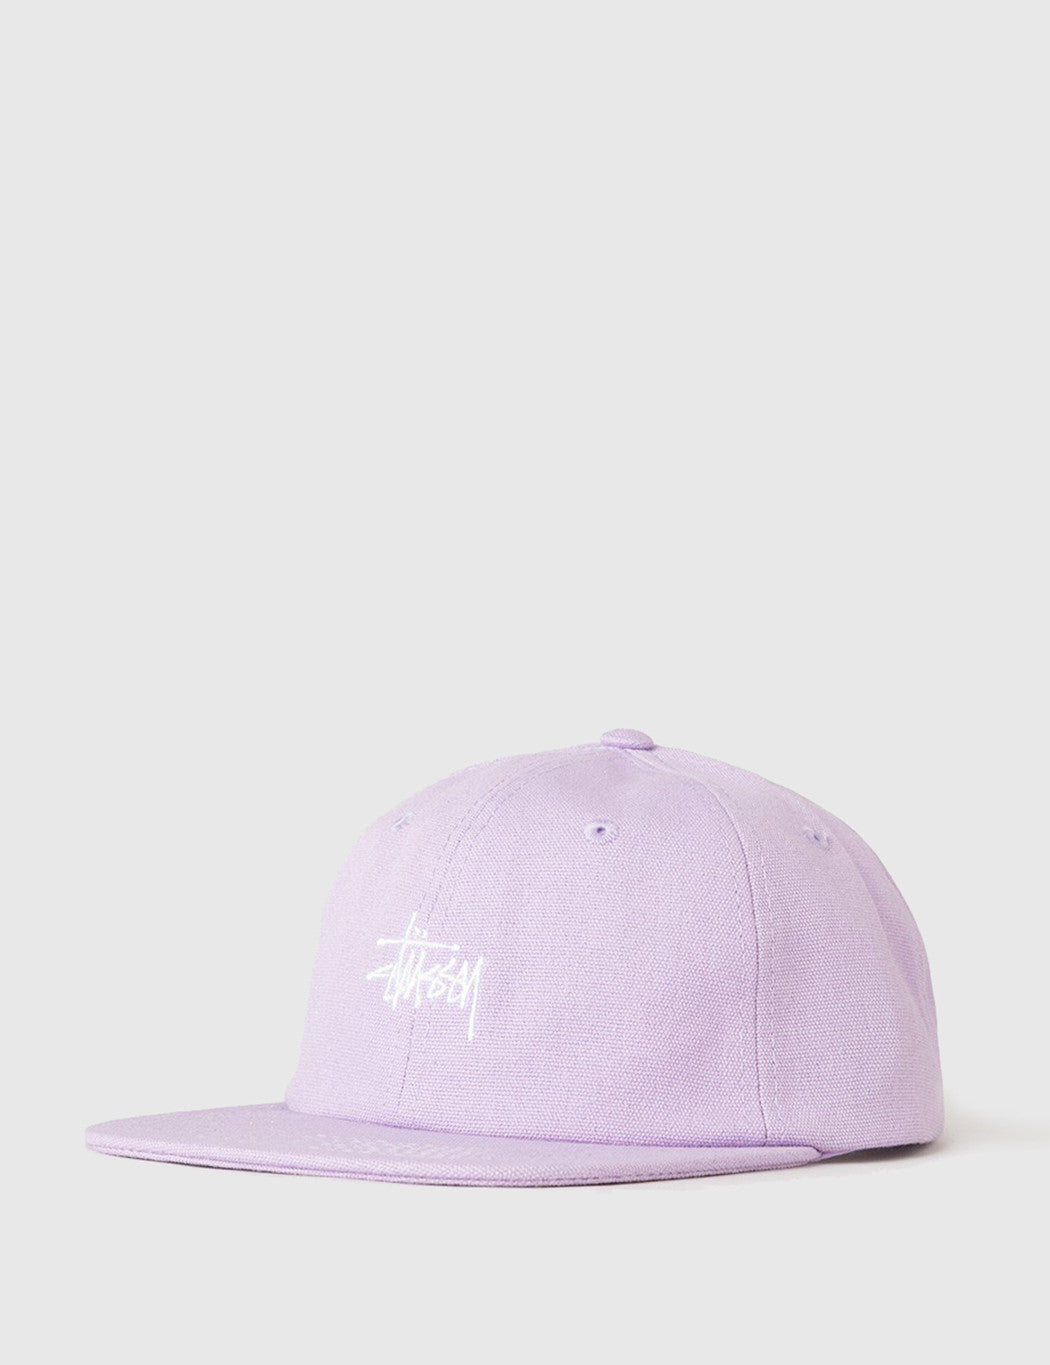 Stussy Smooth Stock Canvas Cap - Lavender